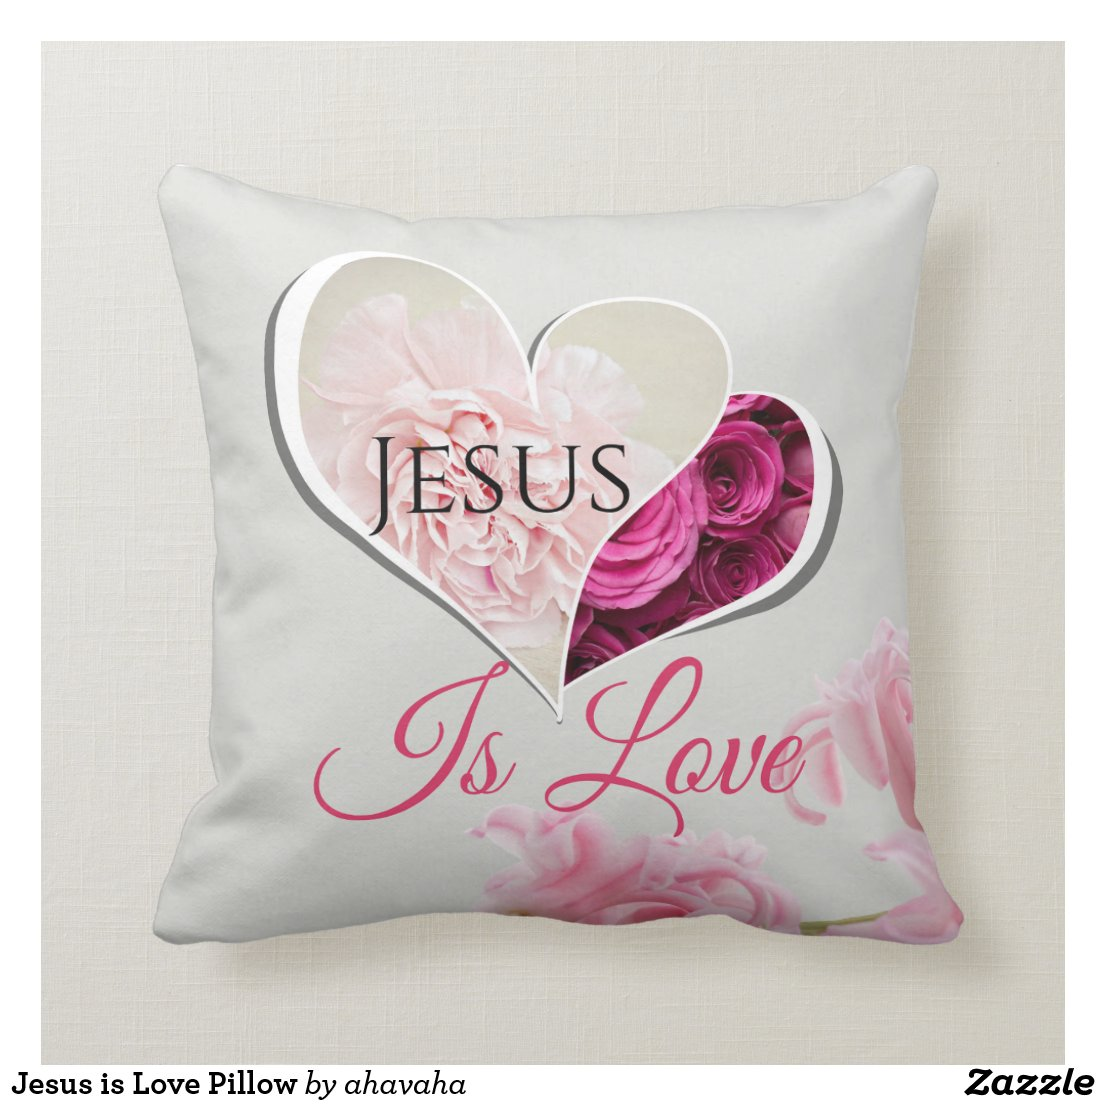 Jesus is Love Pillow